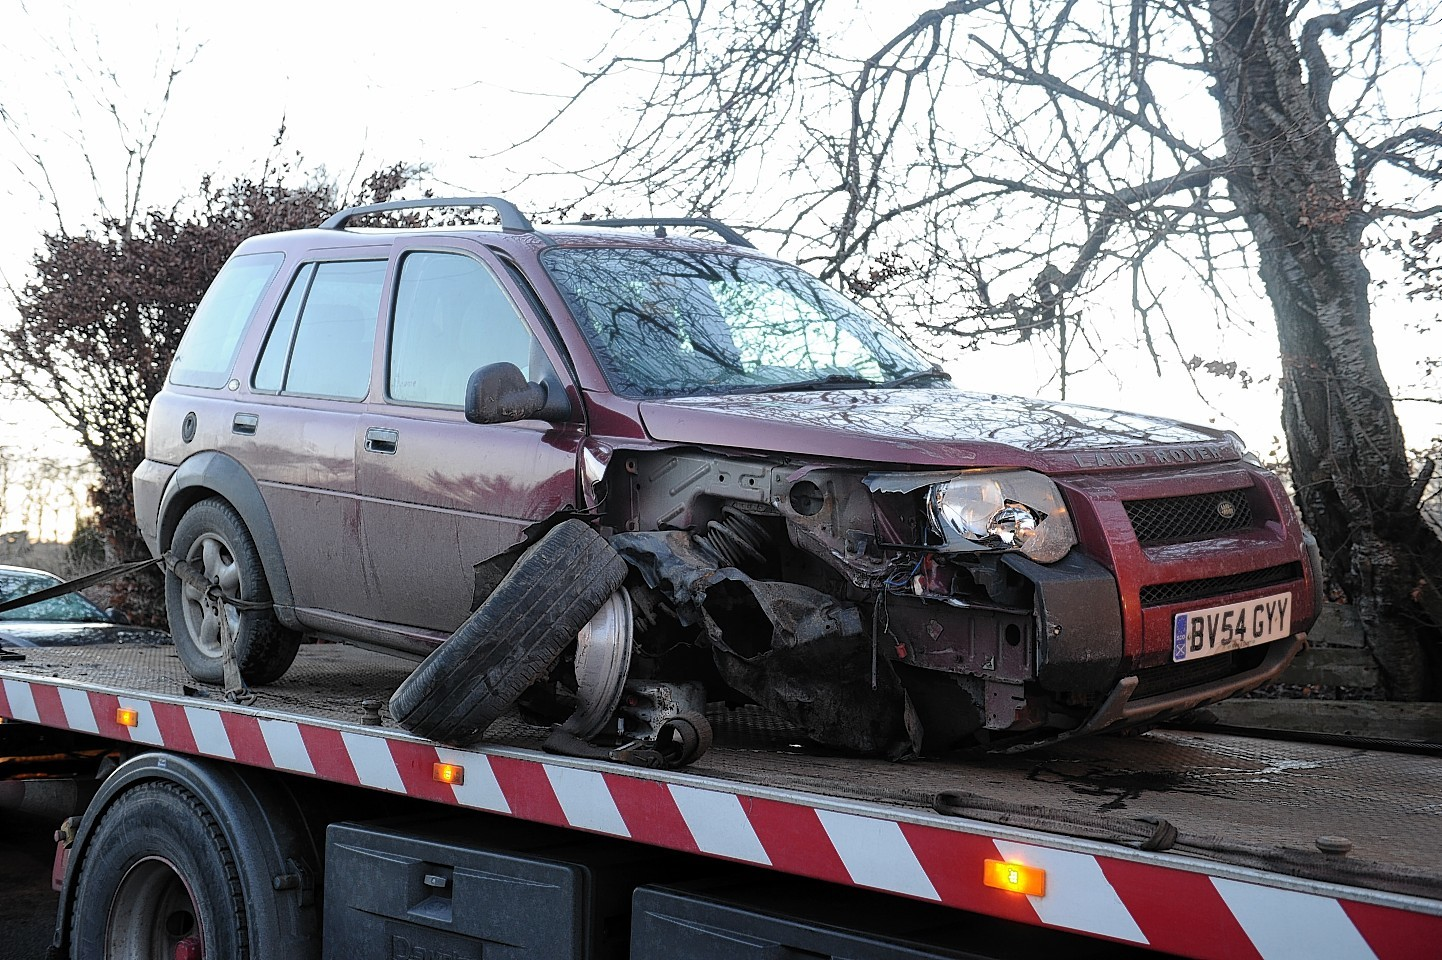 One of the cars involved in the crash on the B979